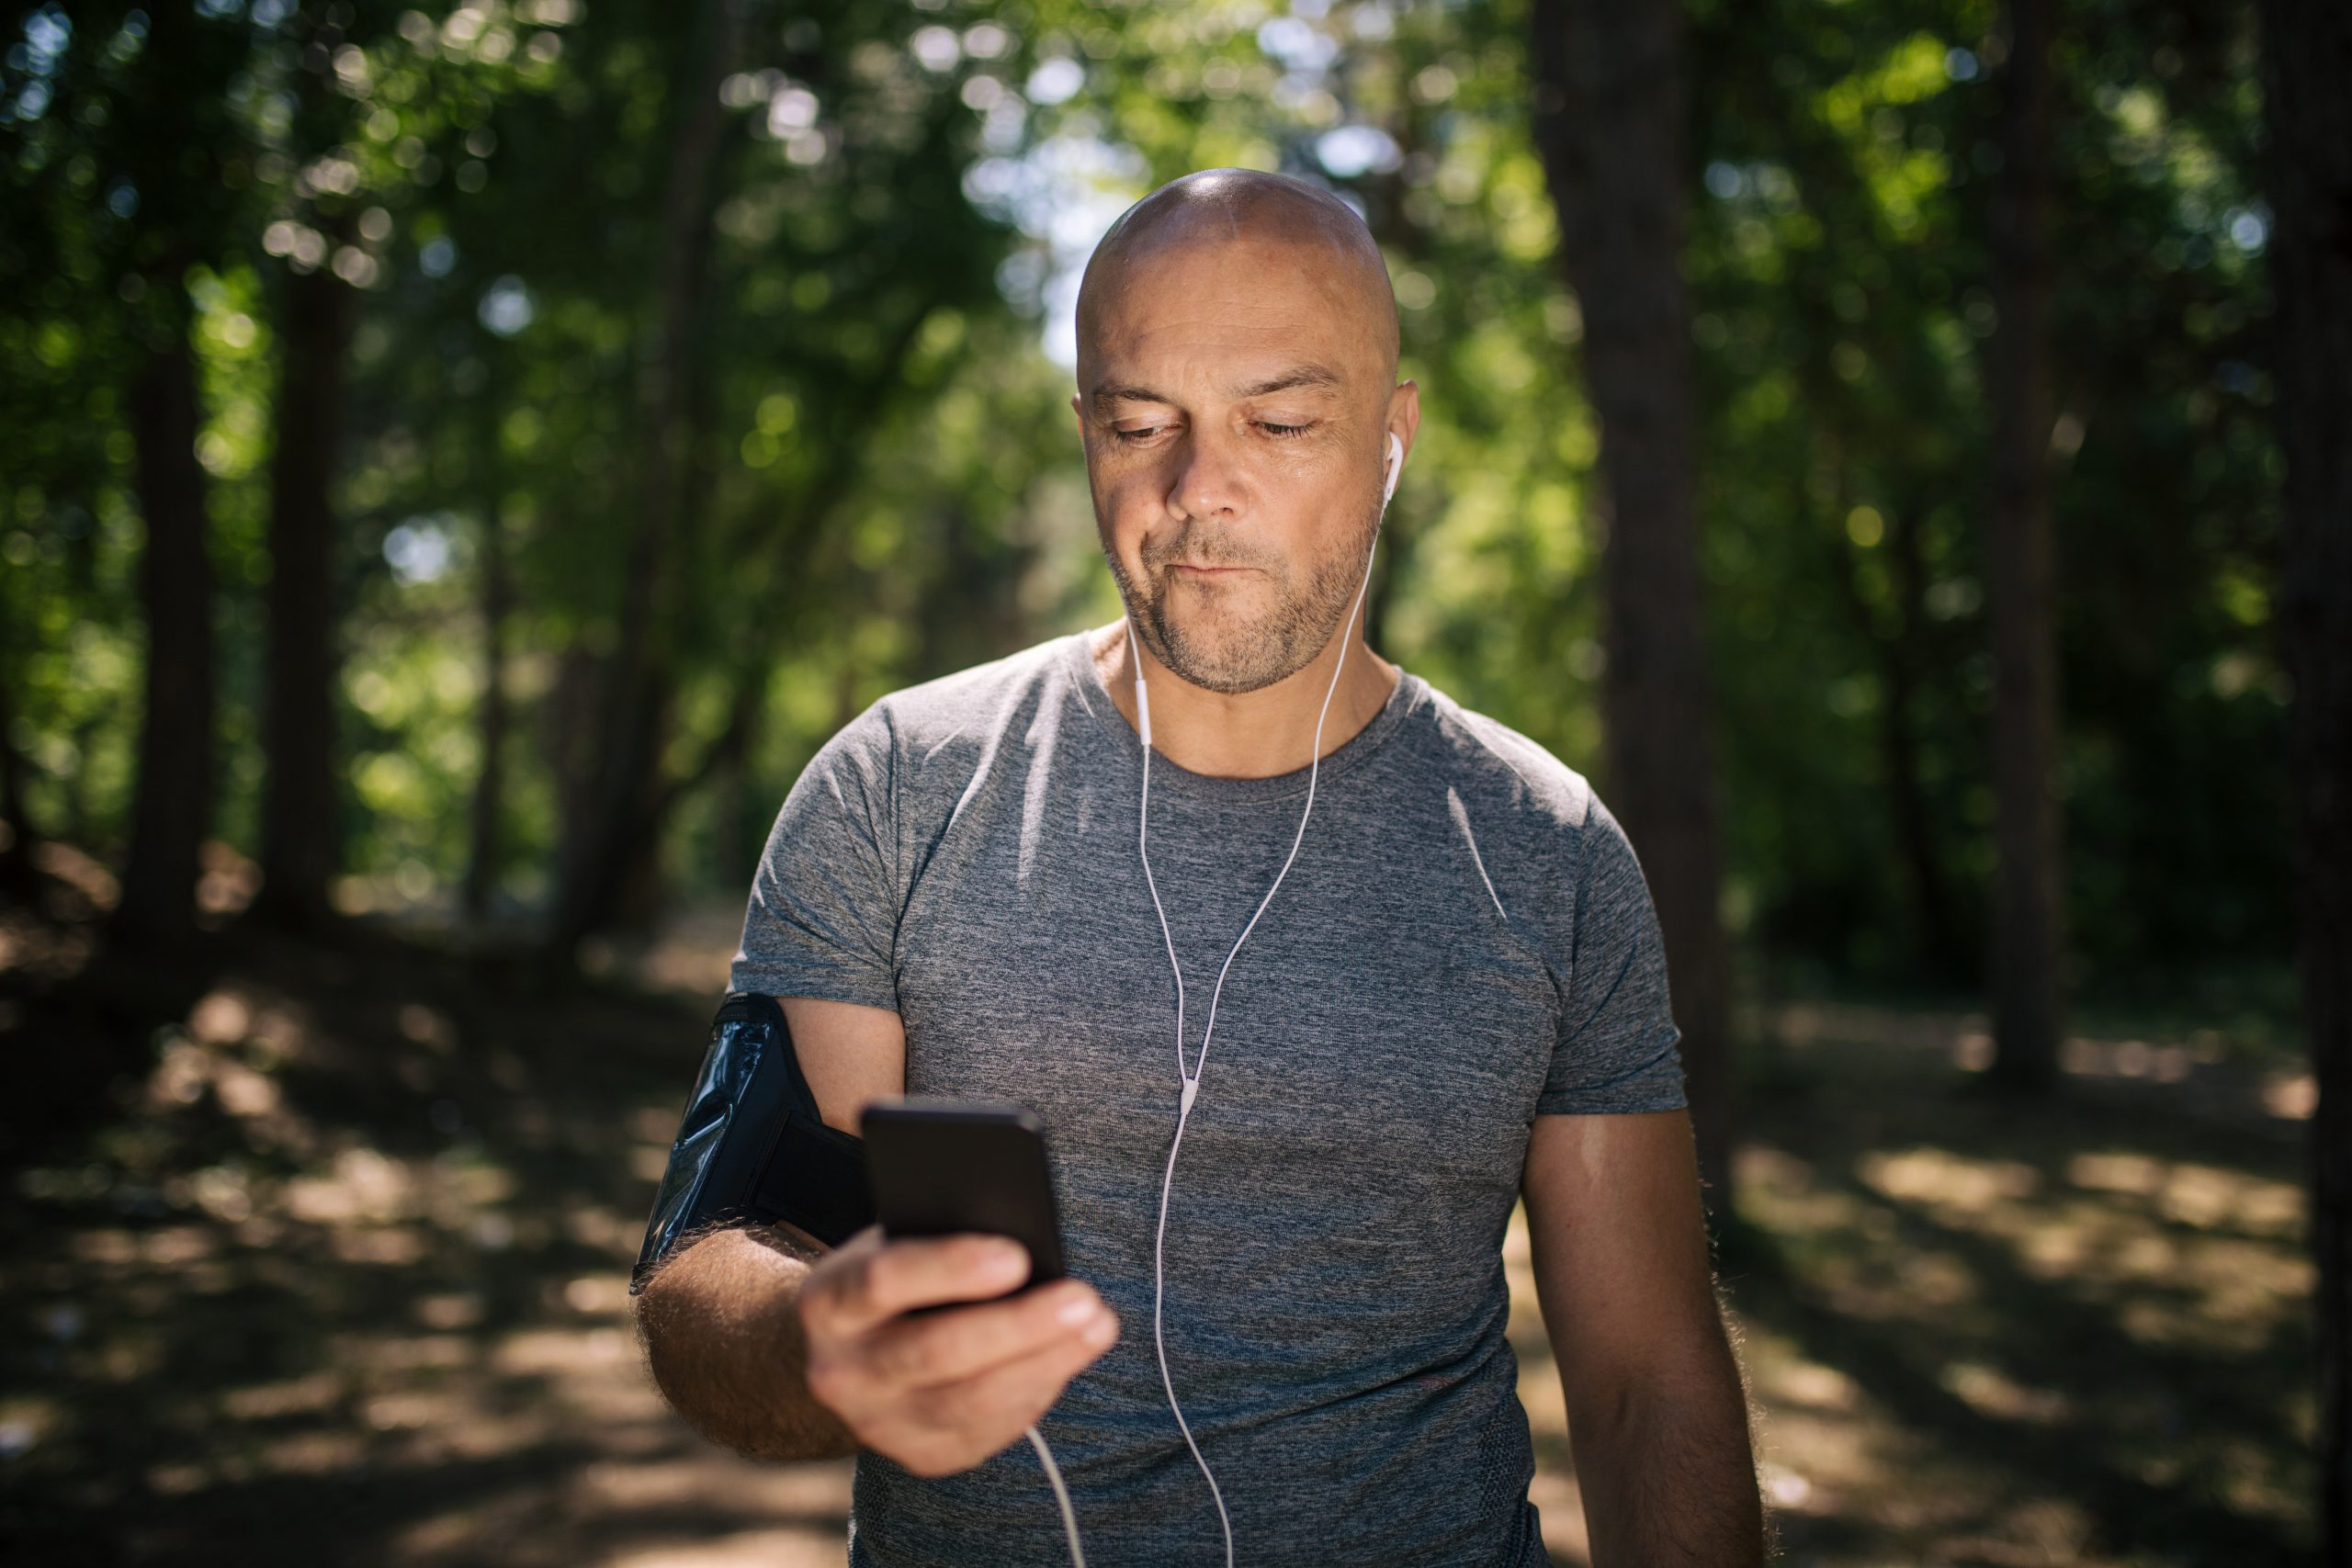 Knee Pain Got You Down? Check Your Text Messages